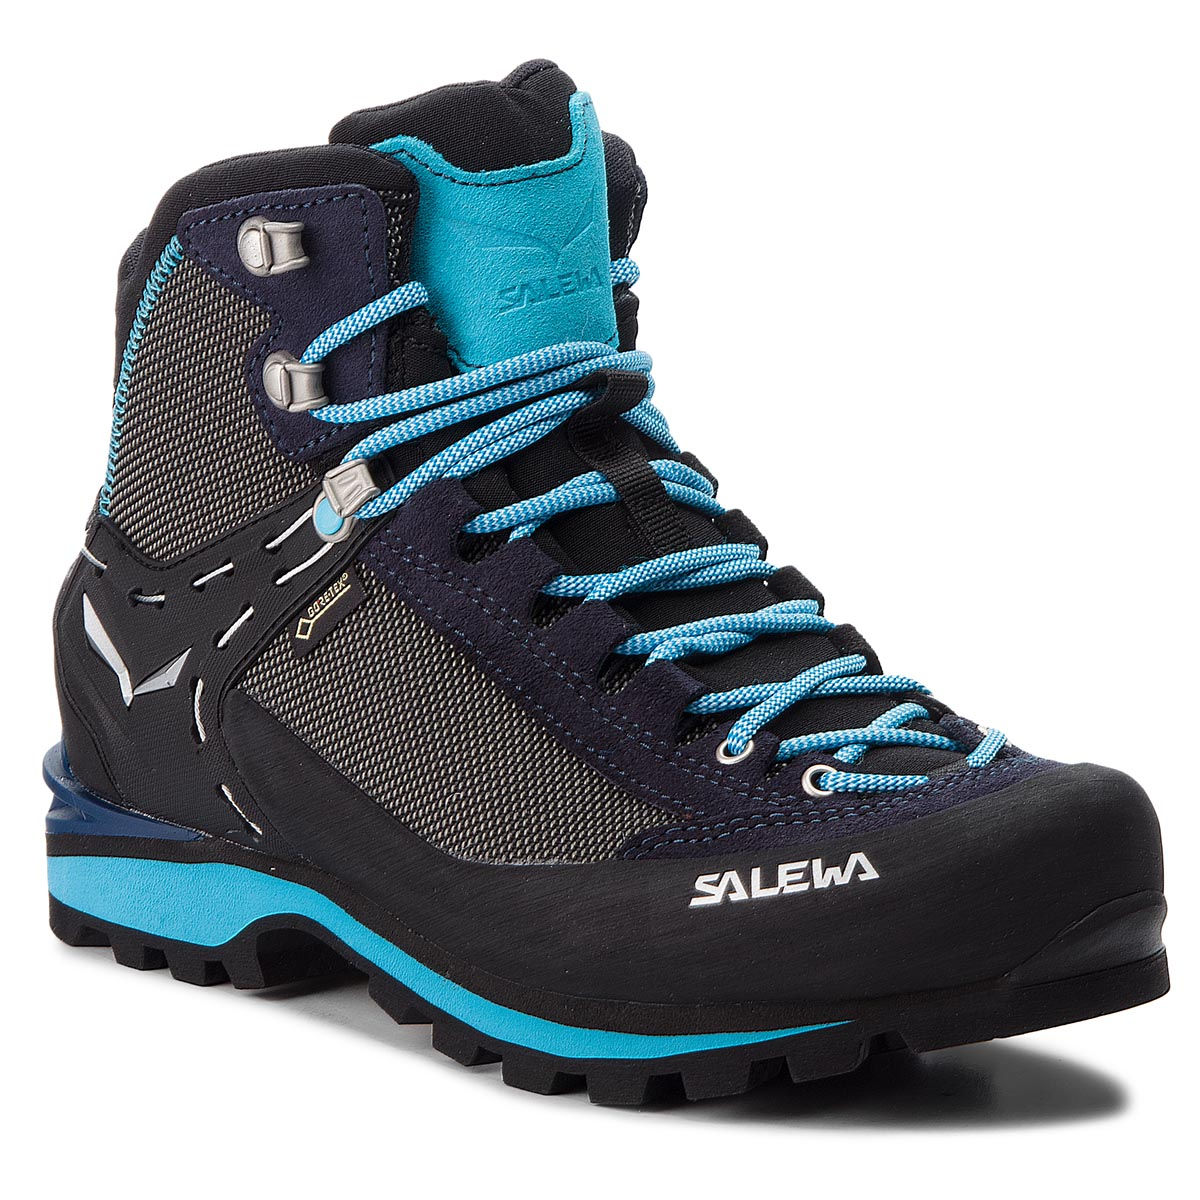 Trekkings Salewa - Crow Gtx Gore-Tex 61329-3985 Premium Navy/Ethernal Blue imagine epantofi.ro 2021